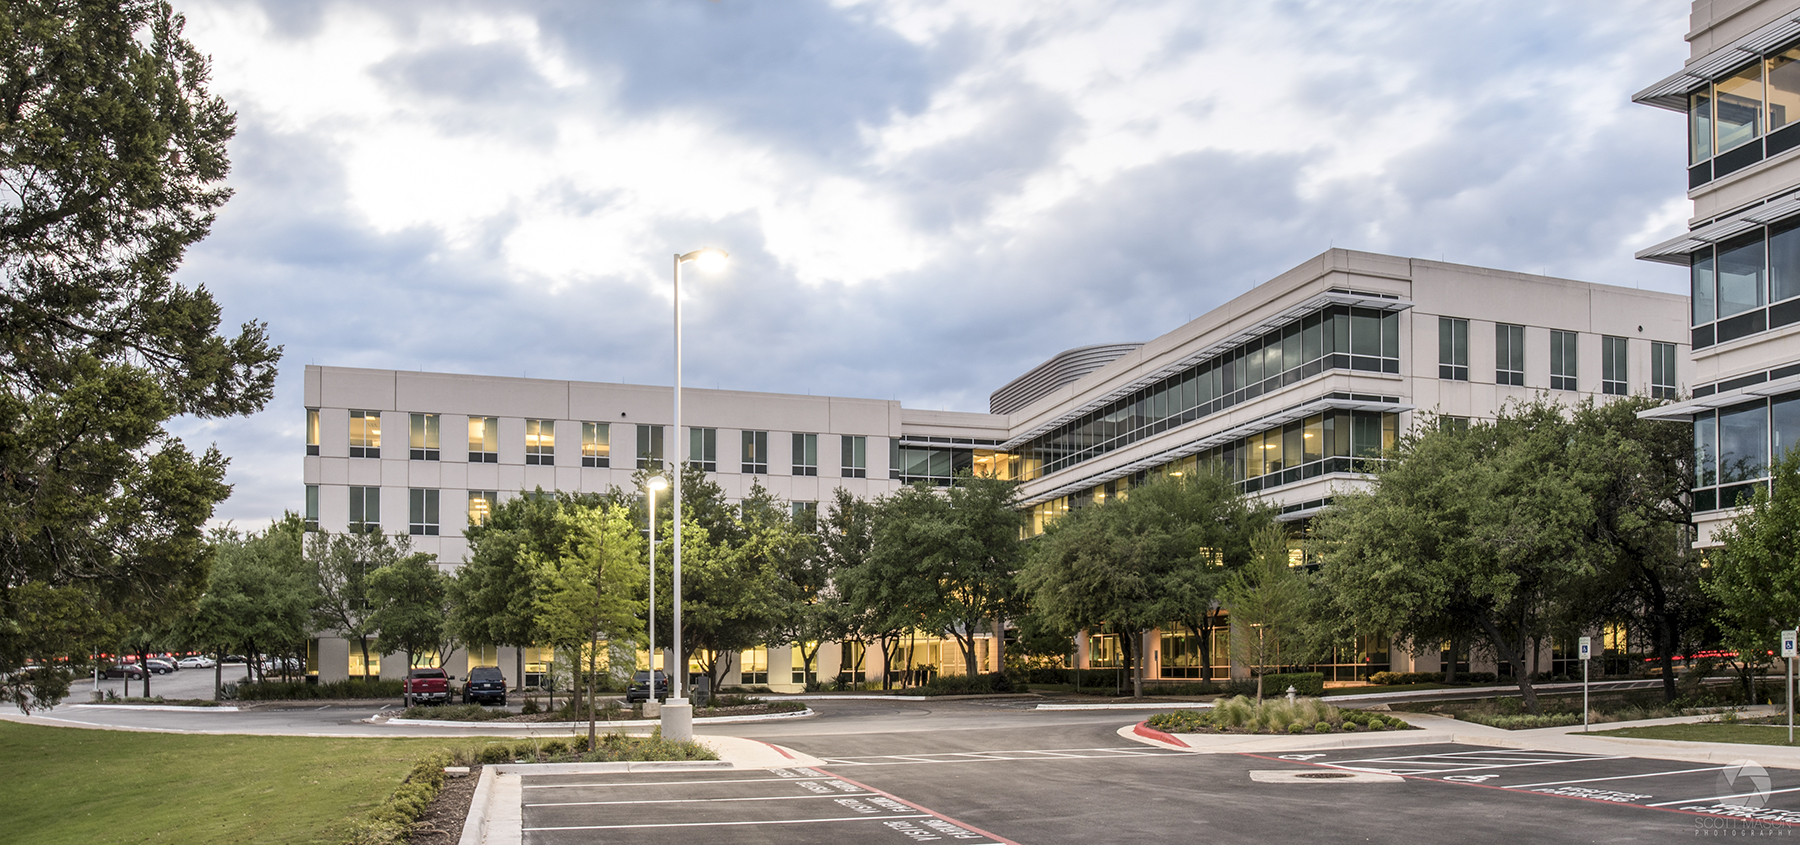 an exteior phot of Research Plaza building in Austin, TX